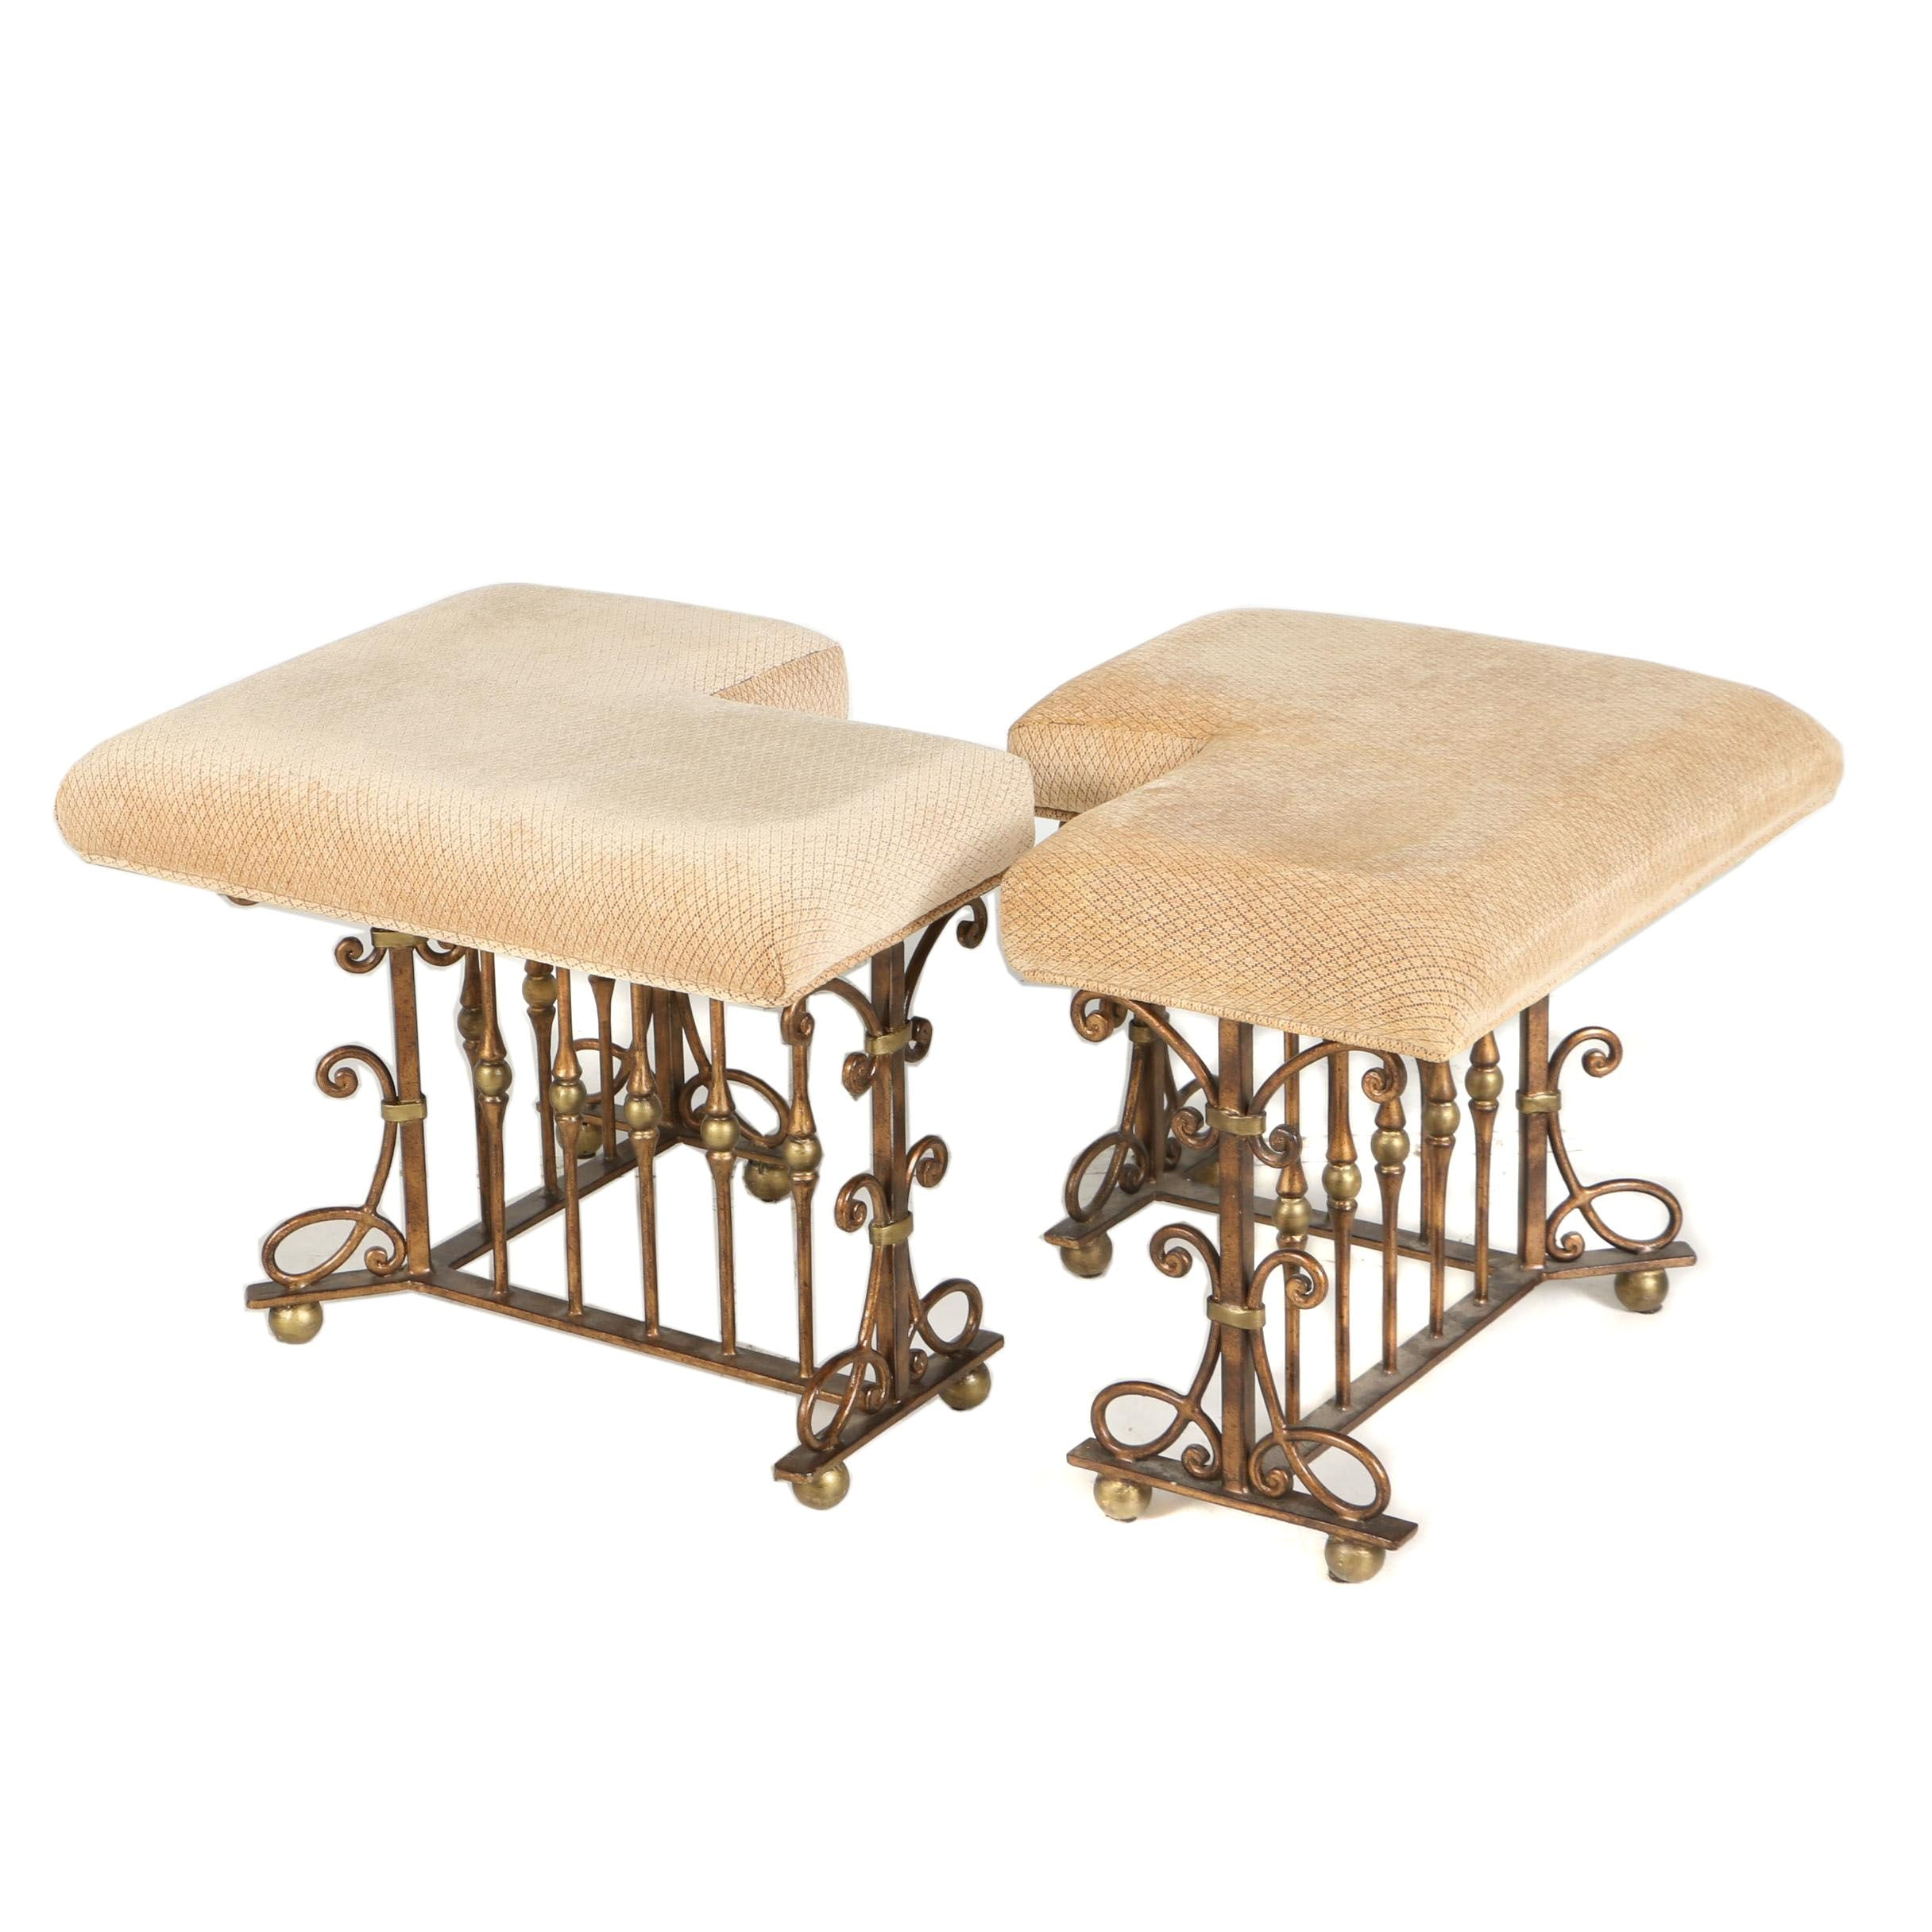 Pair of Bronze-Painted and Parcel-Gilt Metal Hearth Stools, 20th Century